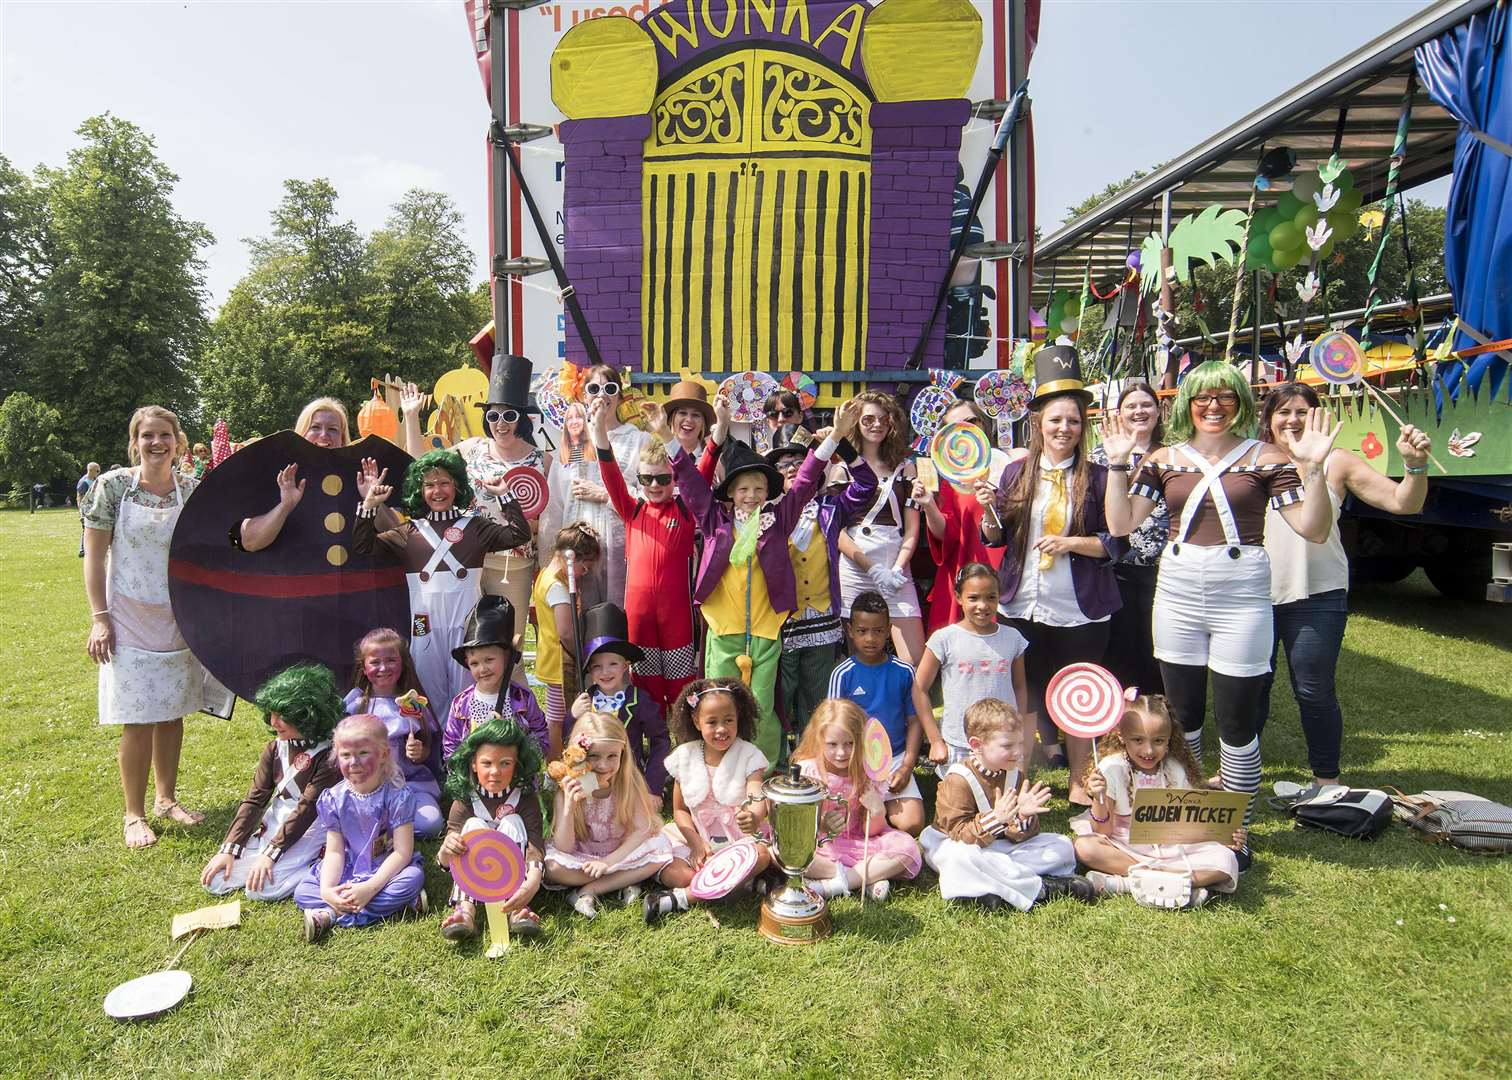 The Weatheralls School float winners presented by Dotty McLeod